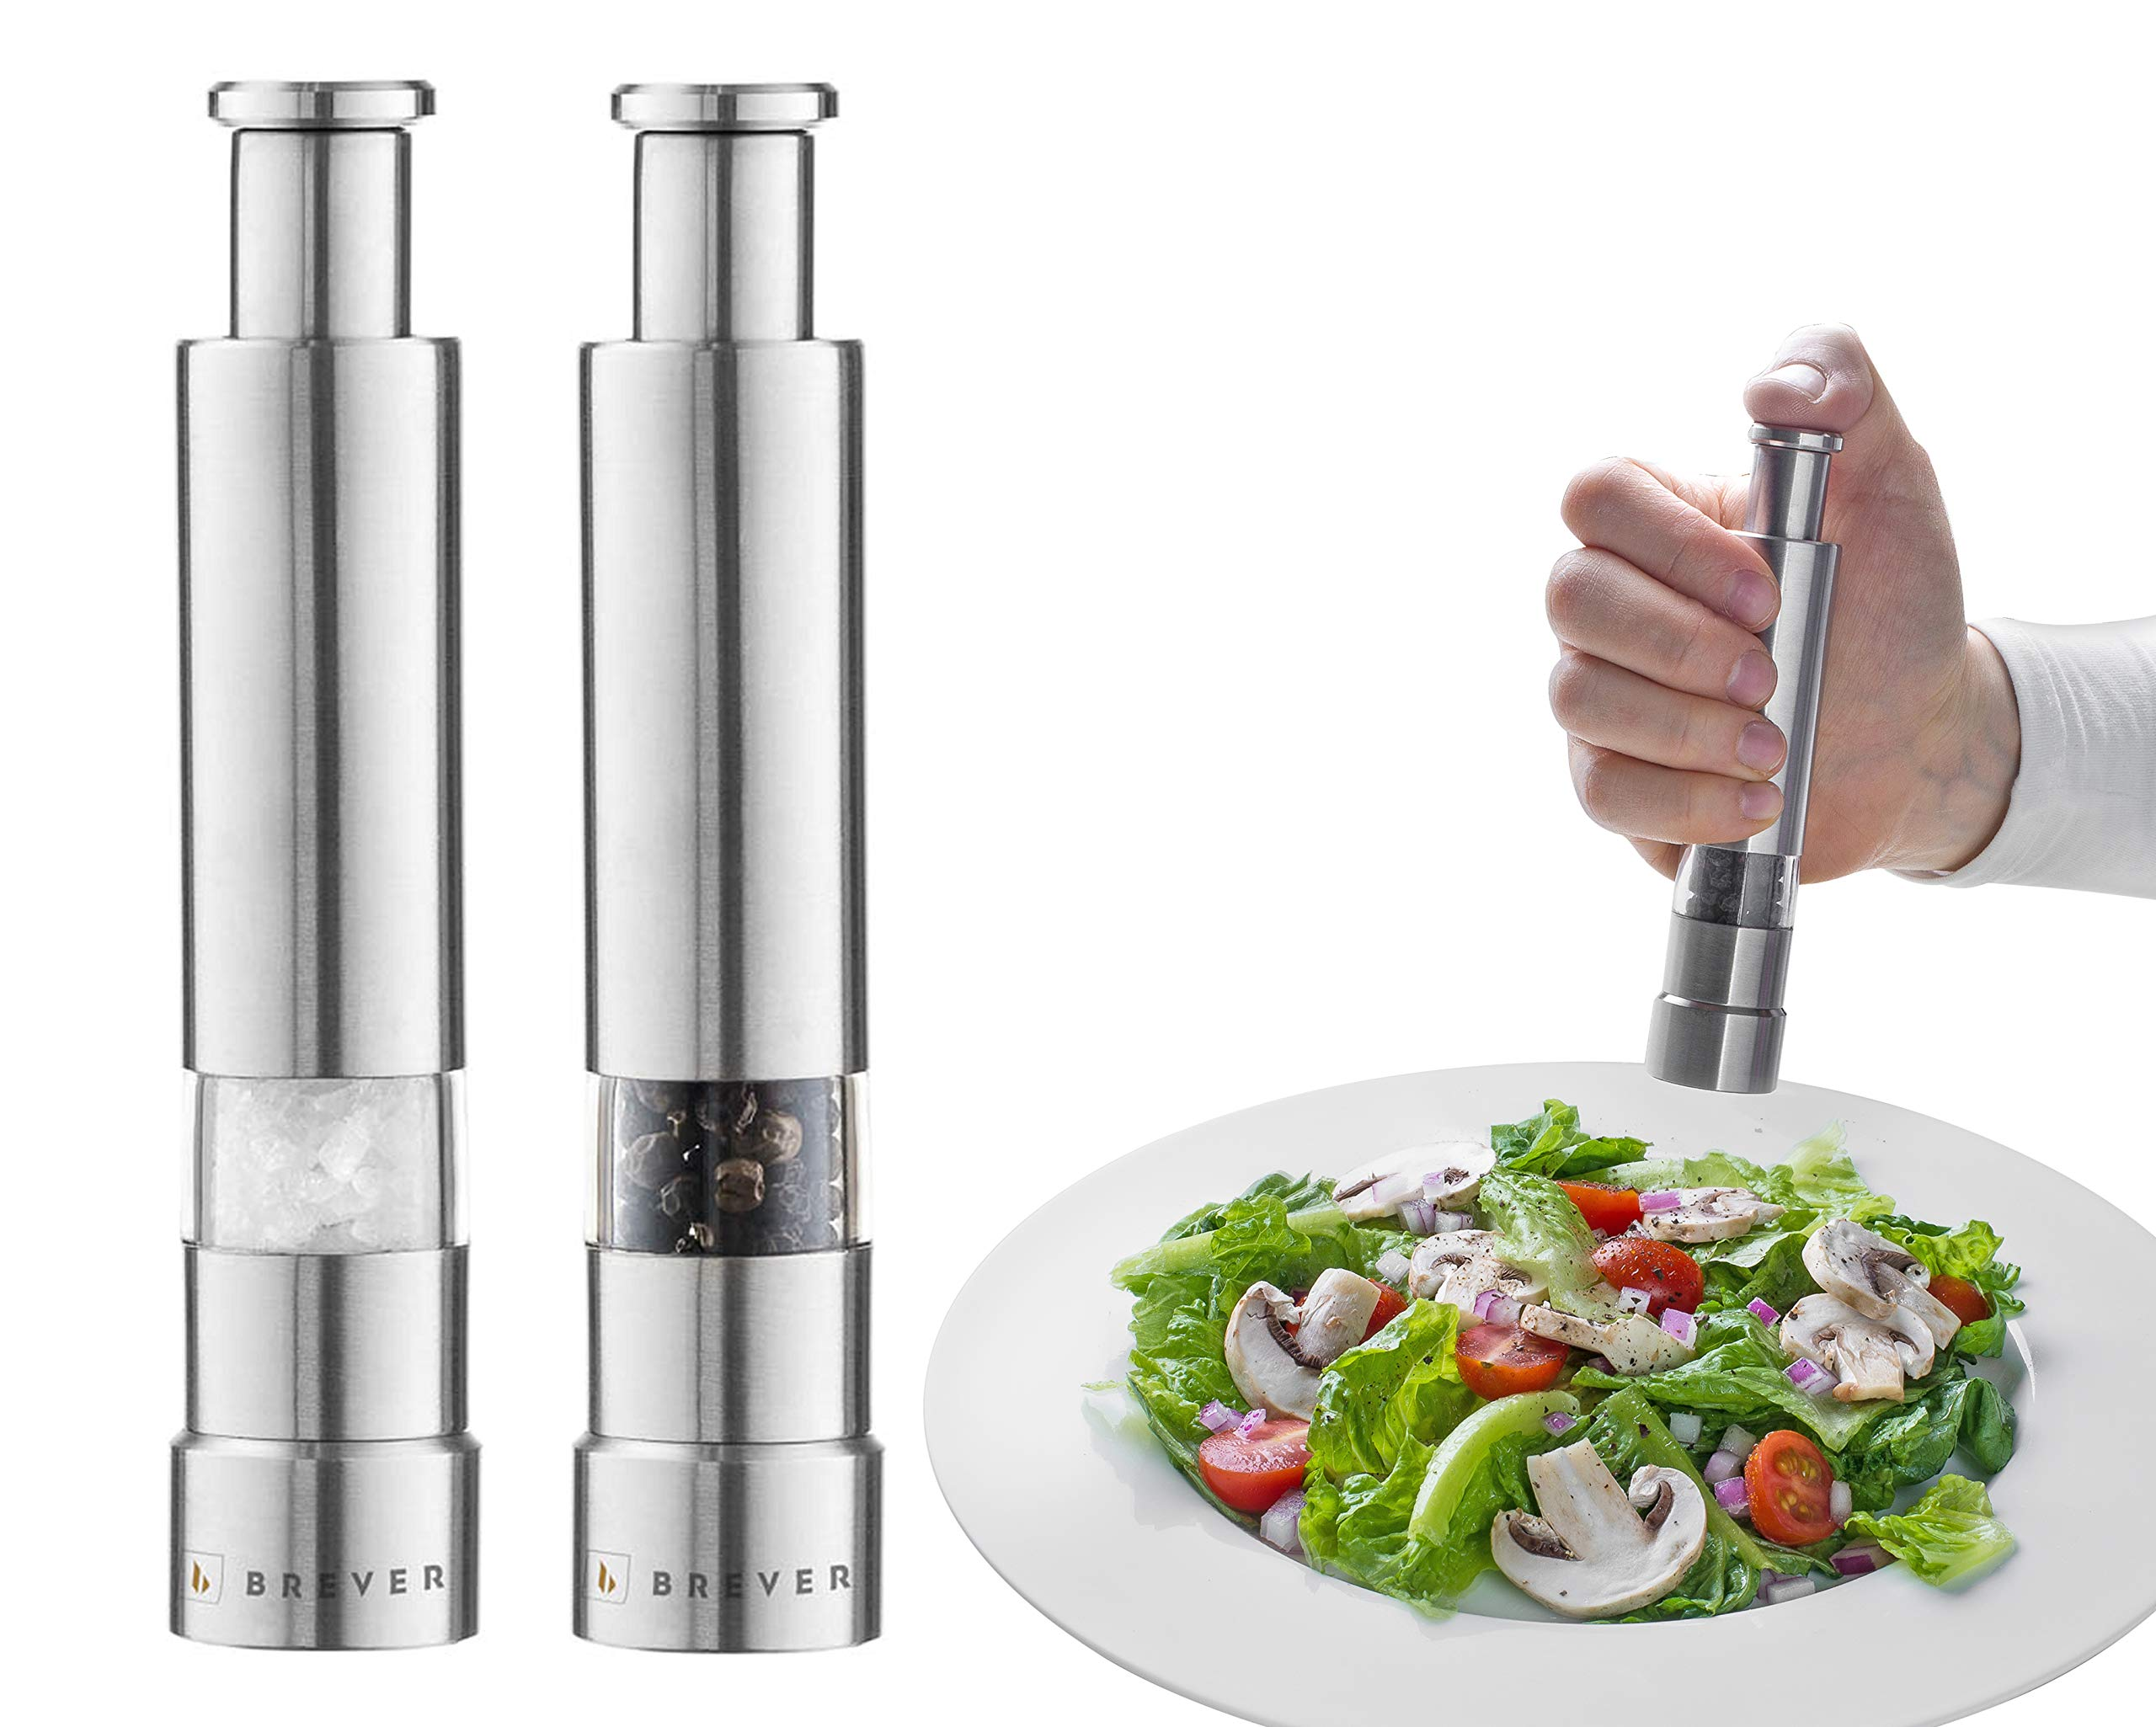 Brever One Handed Salt and Pepper Grinder Set | Pack of 2 Mills | Chic Modern Design | For Himalayan Salt, Peppercorn Medleys, Minced Garlic, and Other Whole Spices | Stainless Steel and Acrylic